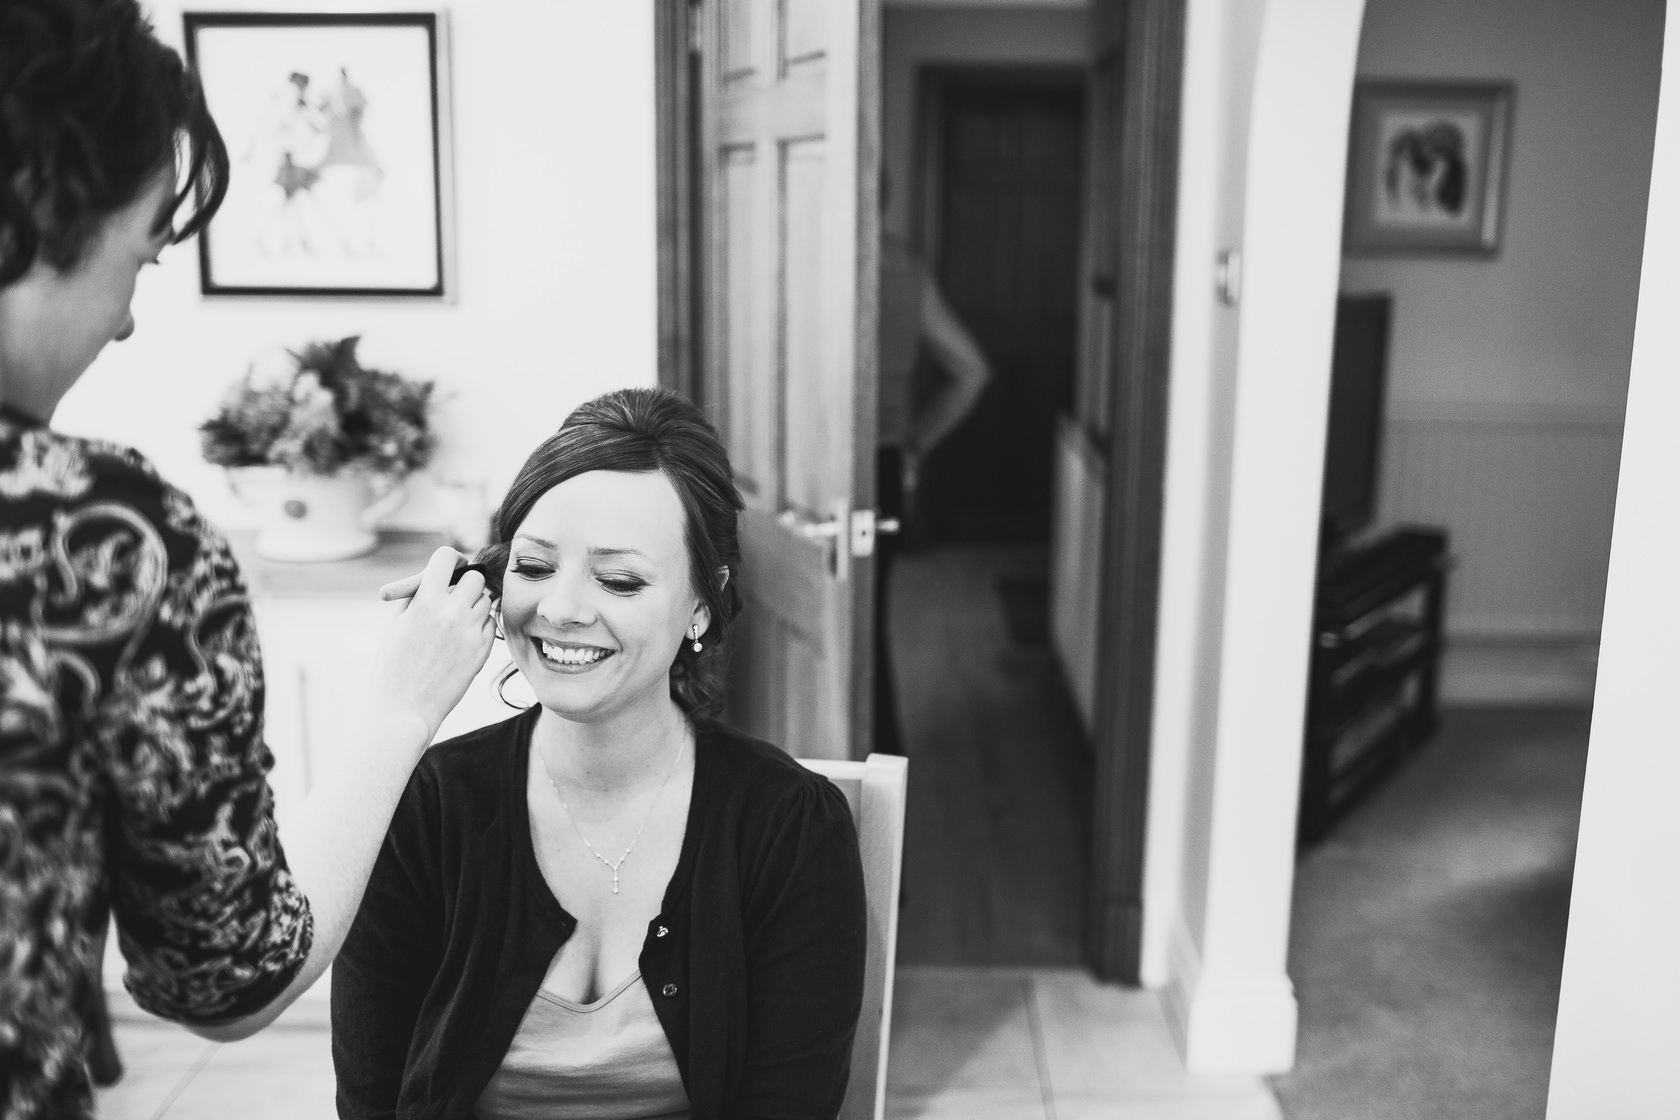 Mitton Hall Wedding Photography - ARJ Photography